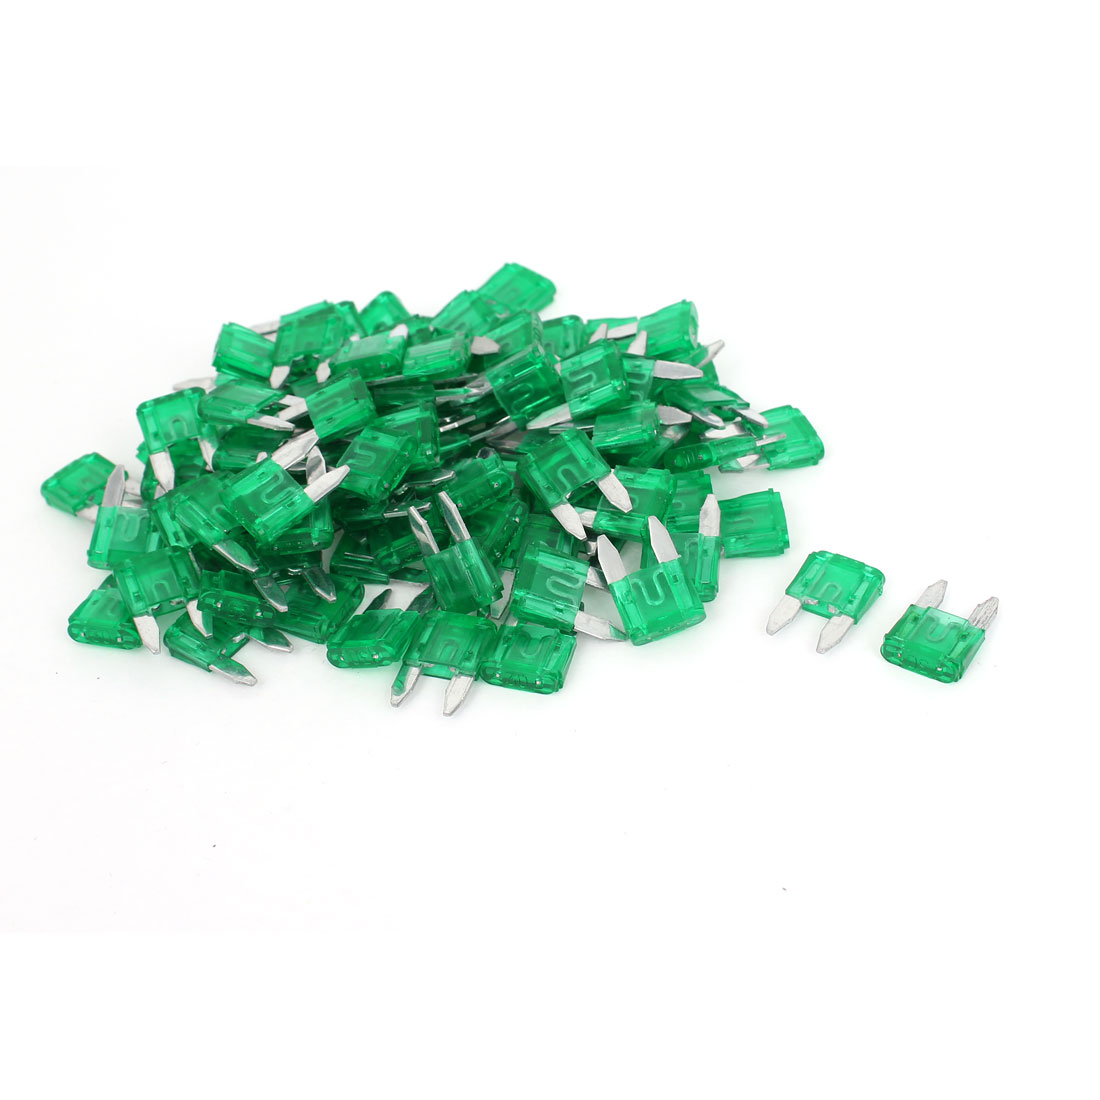 100 Pcs 30A Blade Fuse Auto Car Truck Motorcycle SUV Green by Unique Bargains